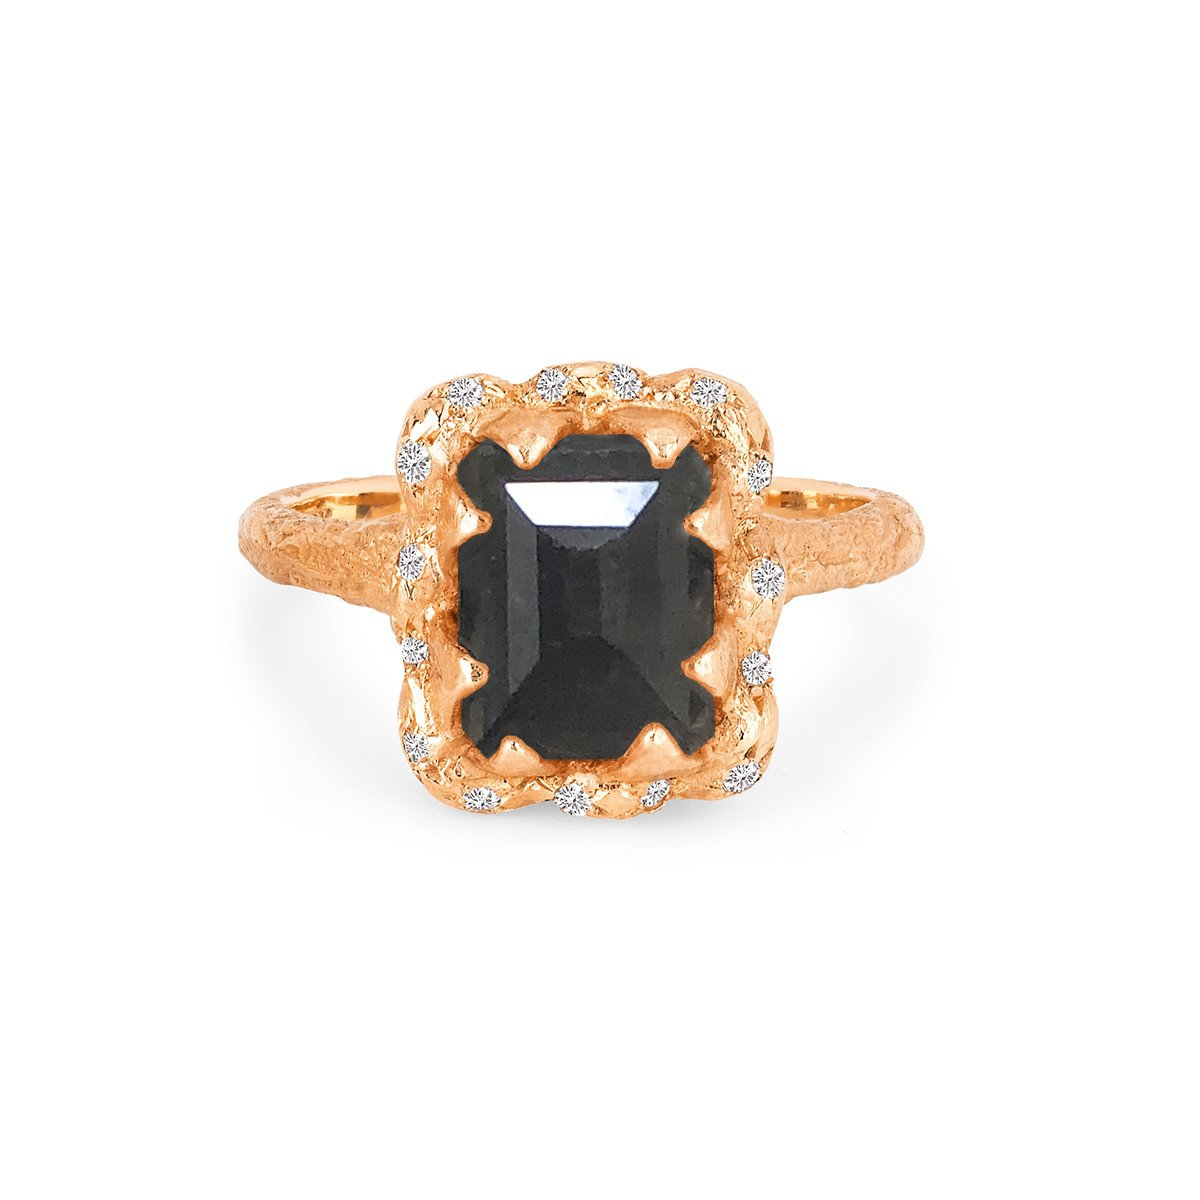 Queen Emerald Cut Black Diamond Ring with Sprinkled Diamonds